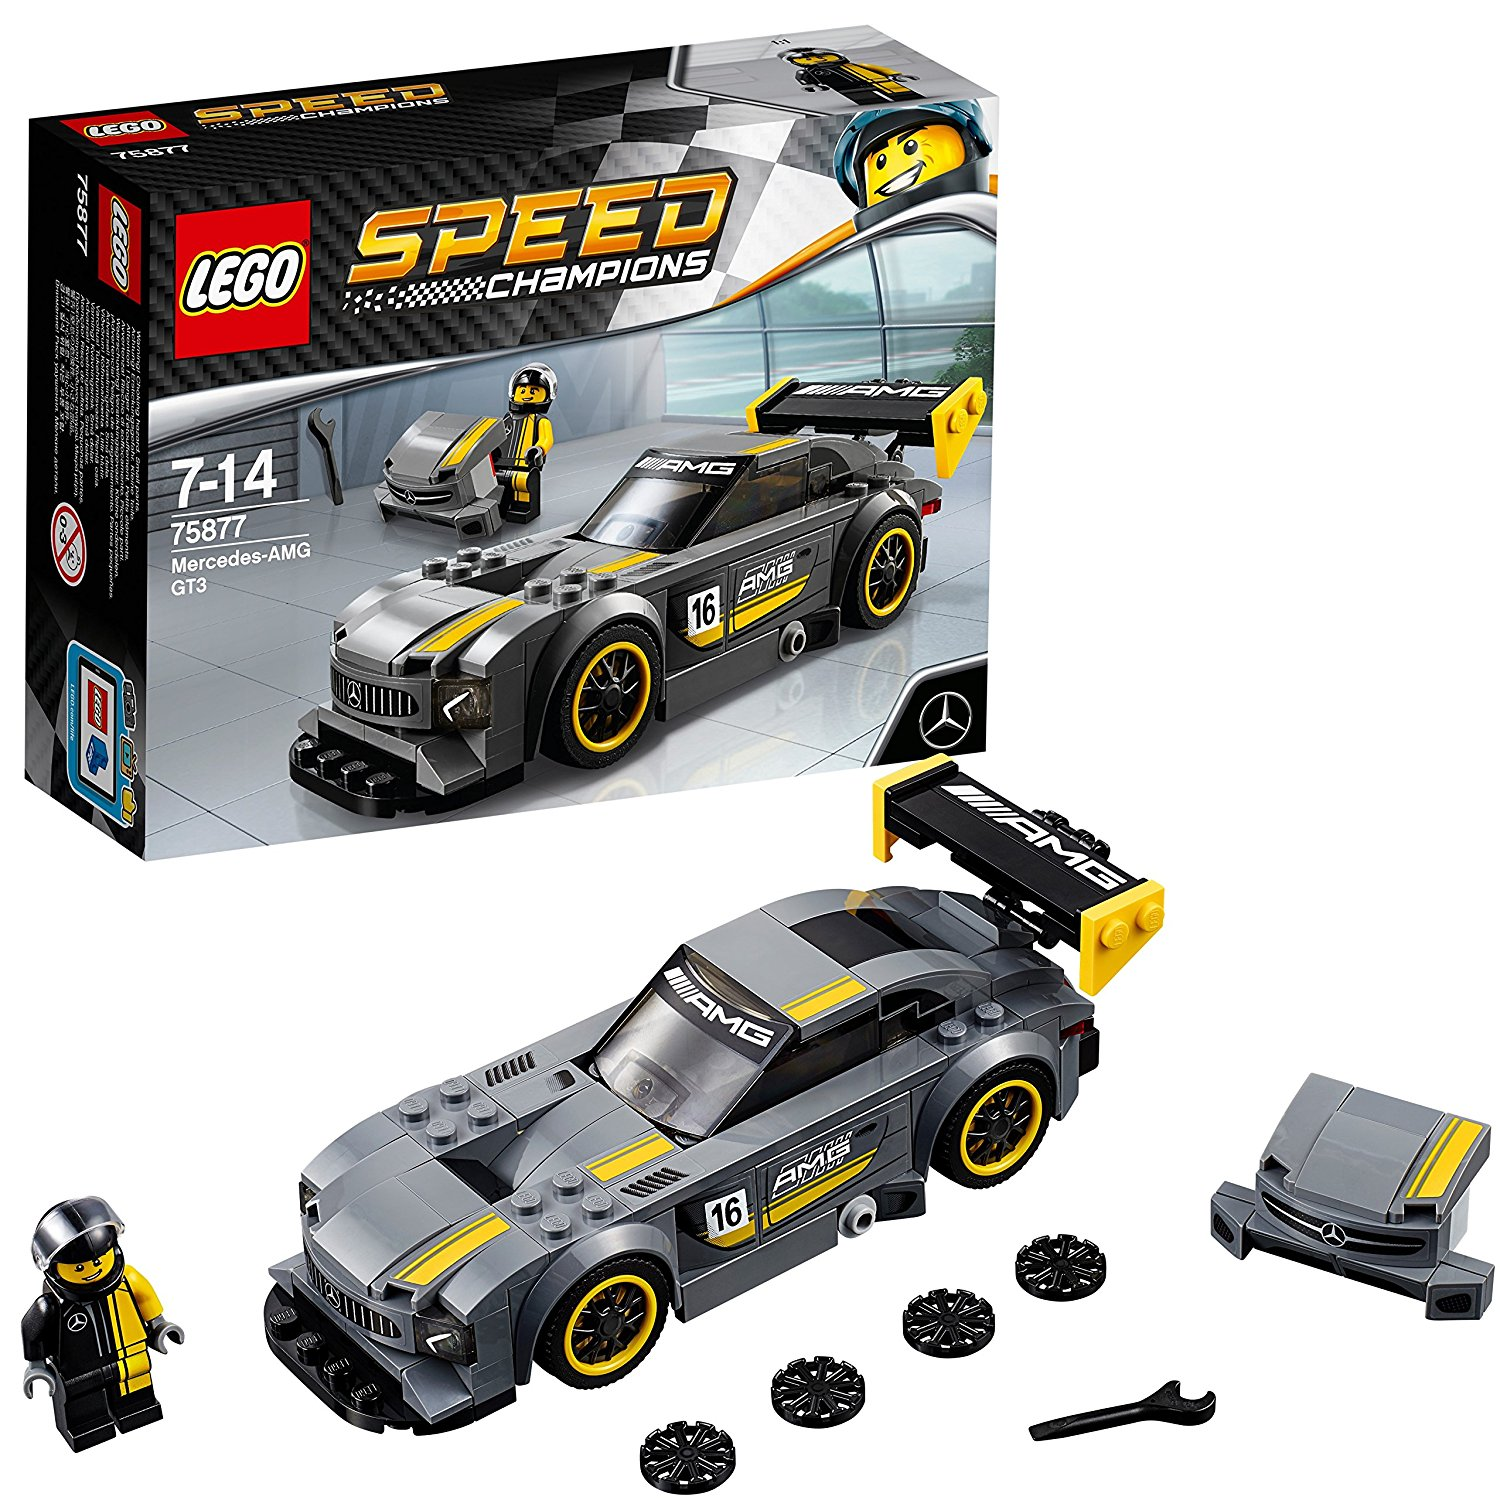 LEGO Speed Champions 75877 – Mercedes-AMG GT3